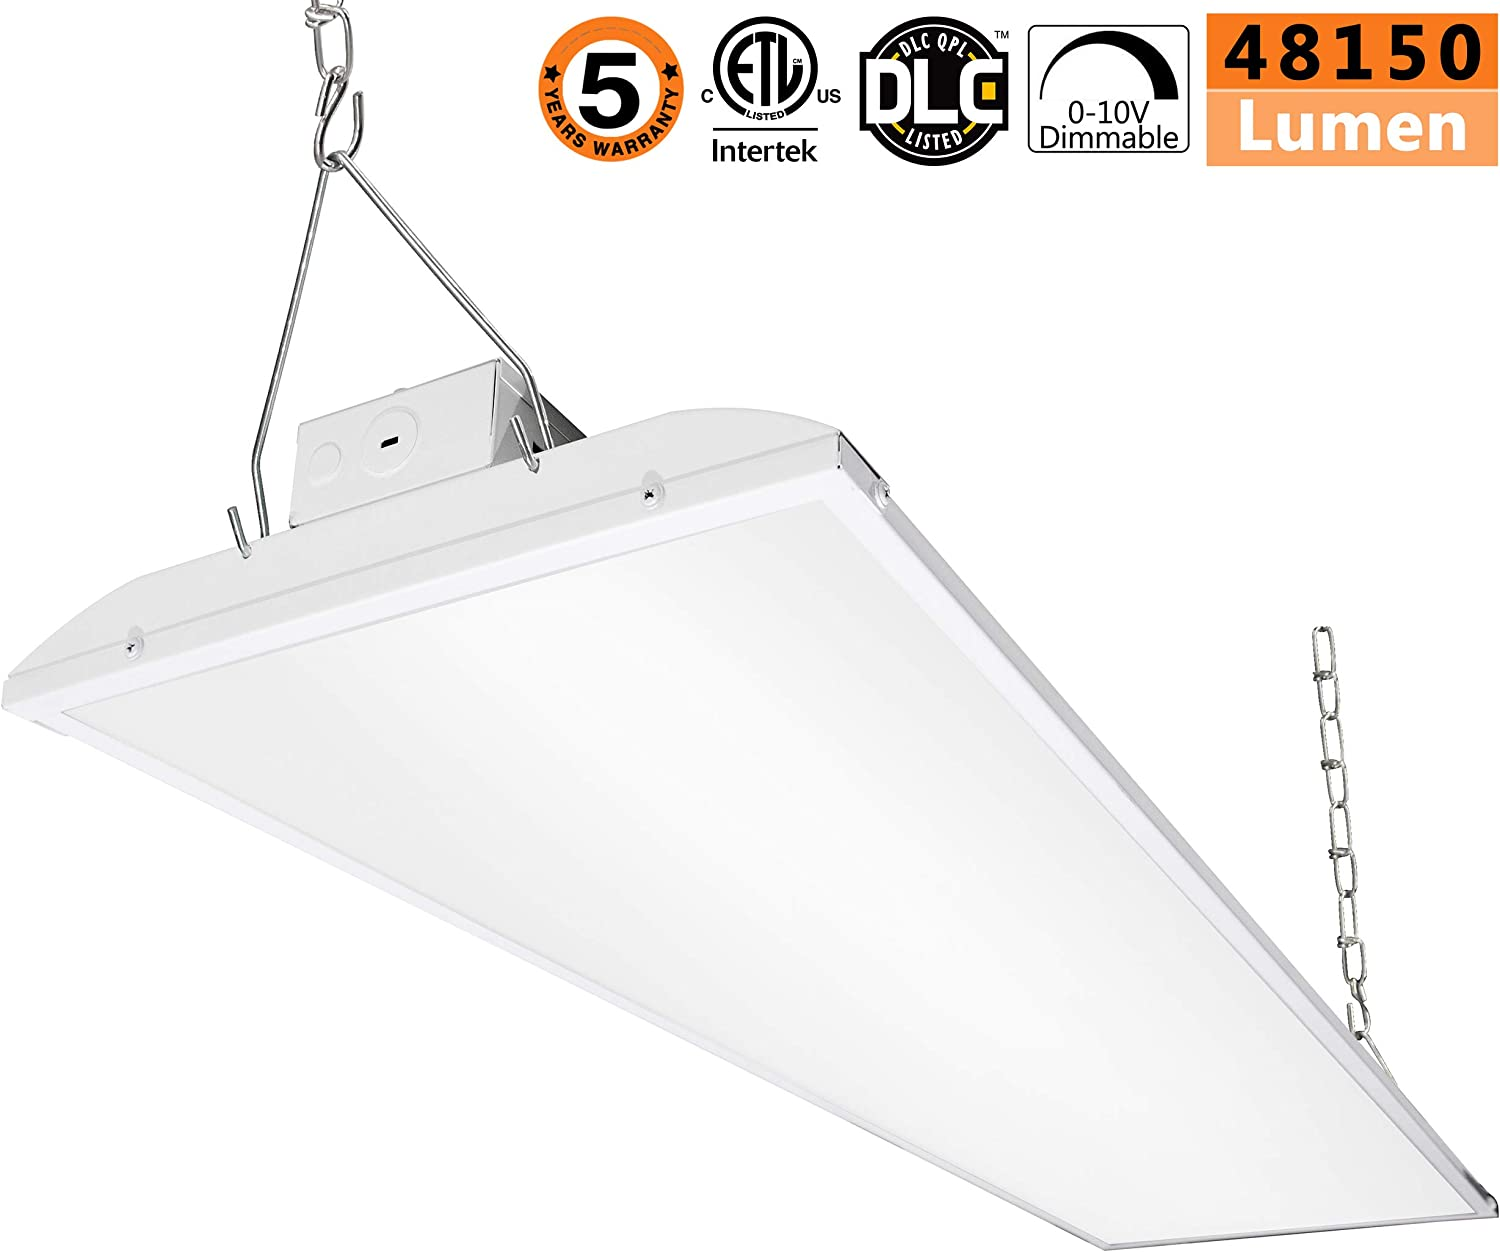 LED High Bay Warehouse Light Bright White 320W Linear Fixture 1200W Equiv Shop